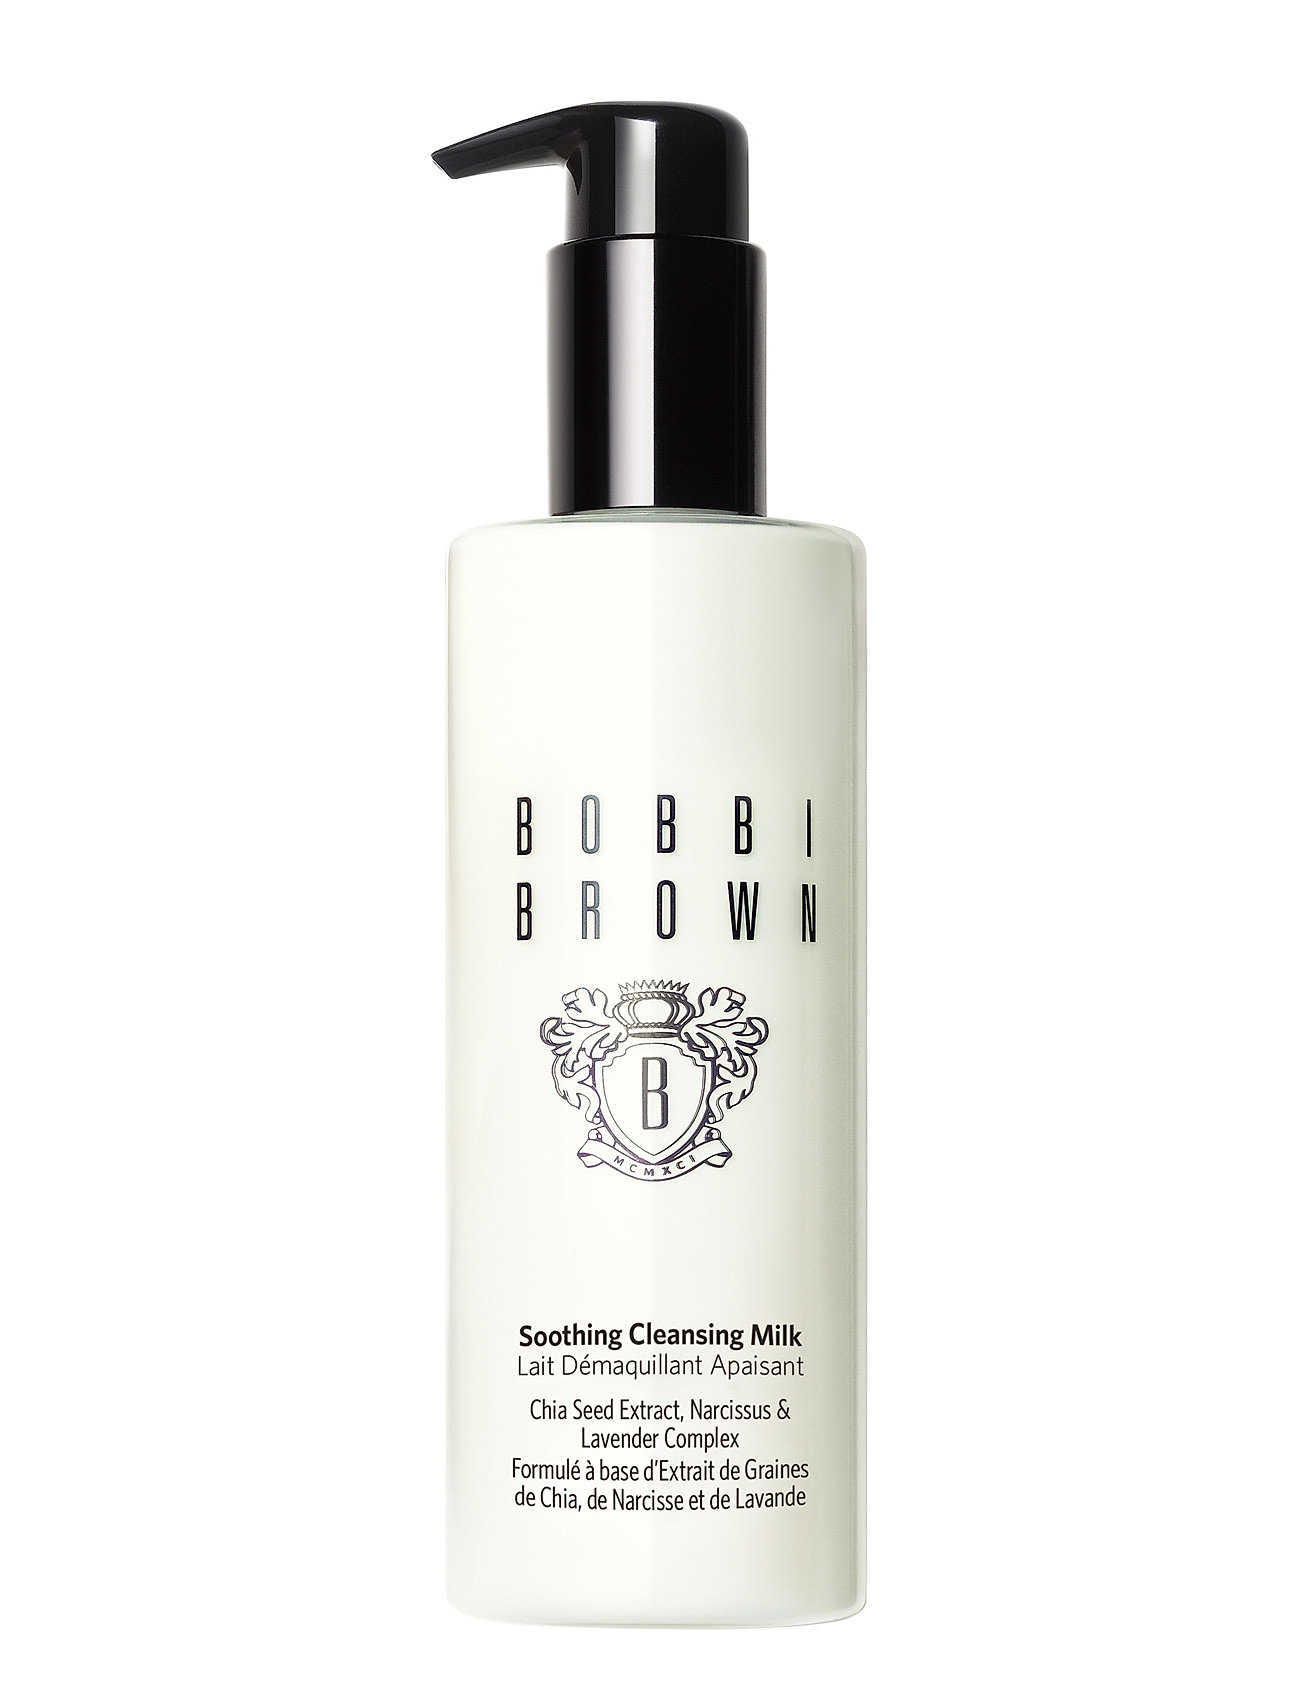 Image of Soothing Cleansing Milk (2839002807)